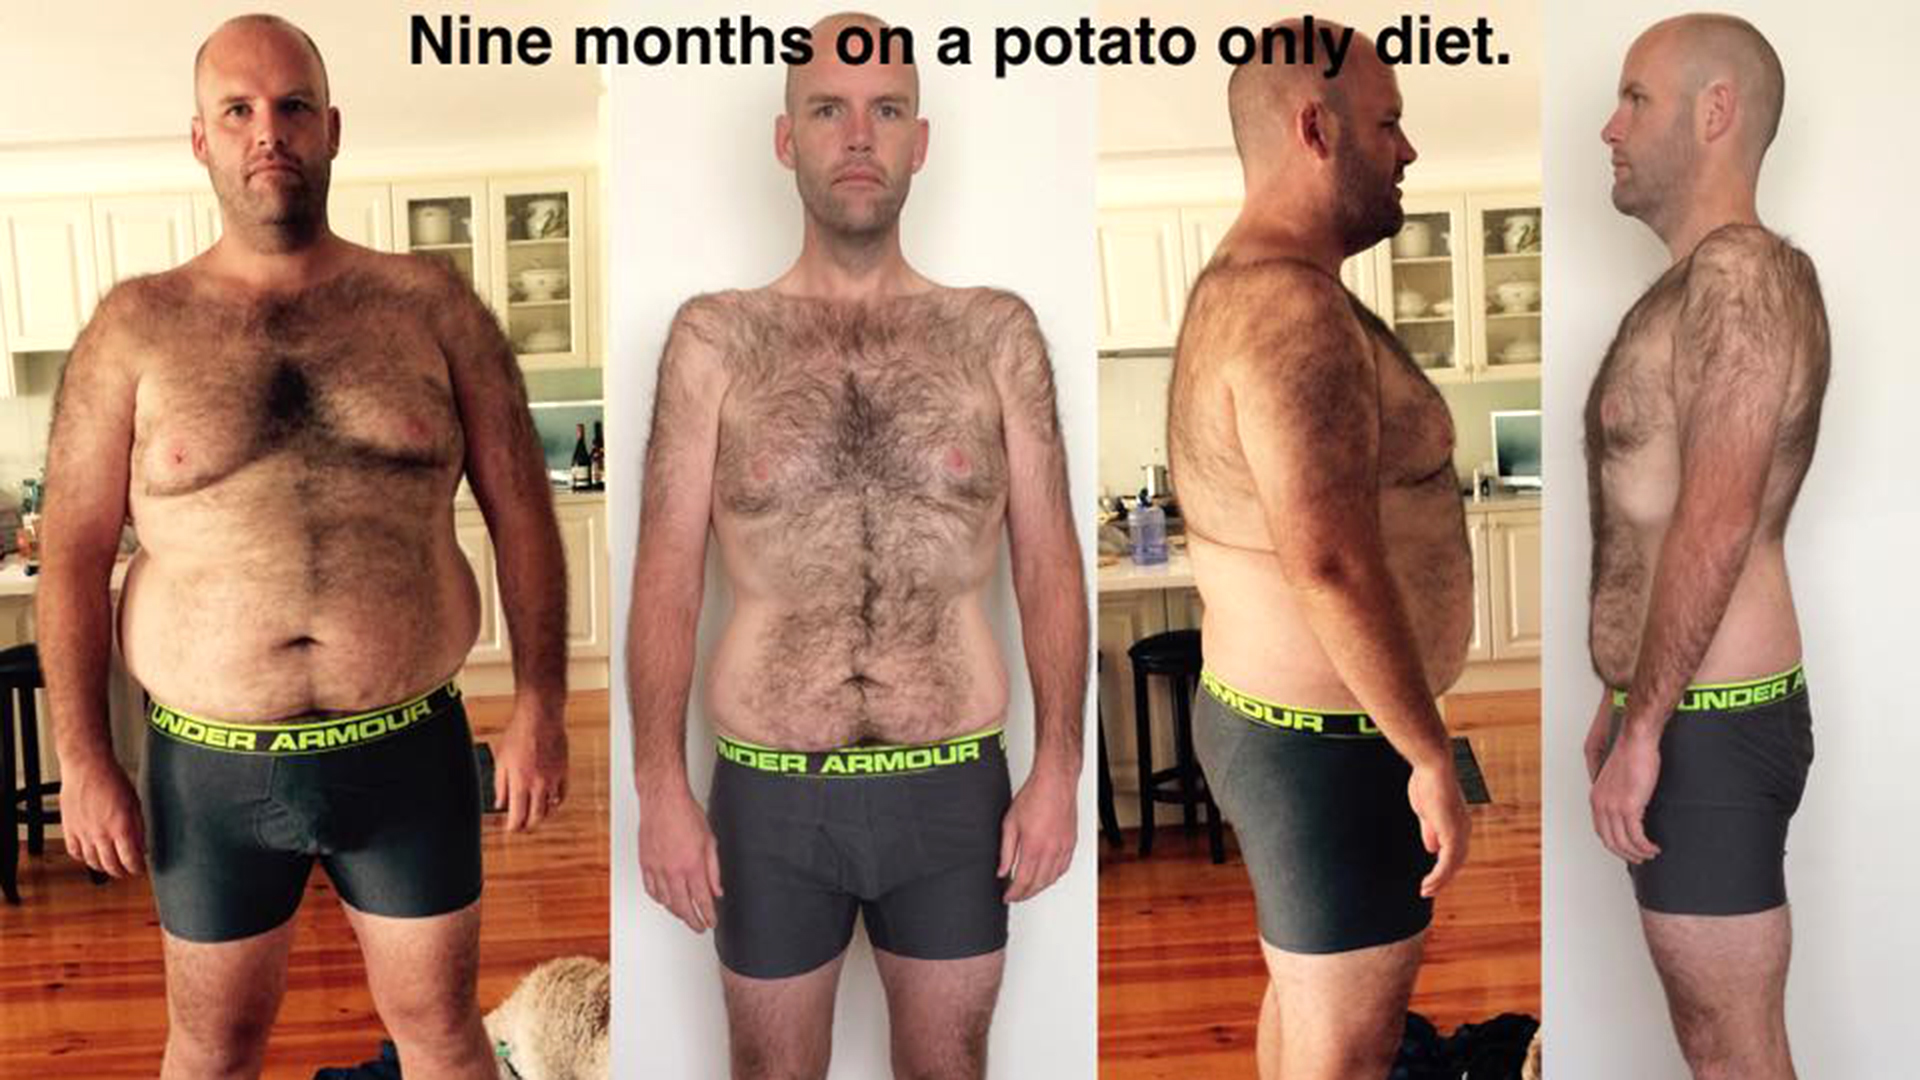 Eating Just Salad Protein For Fast Weight Loss Livestrong